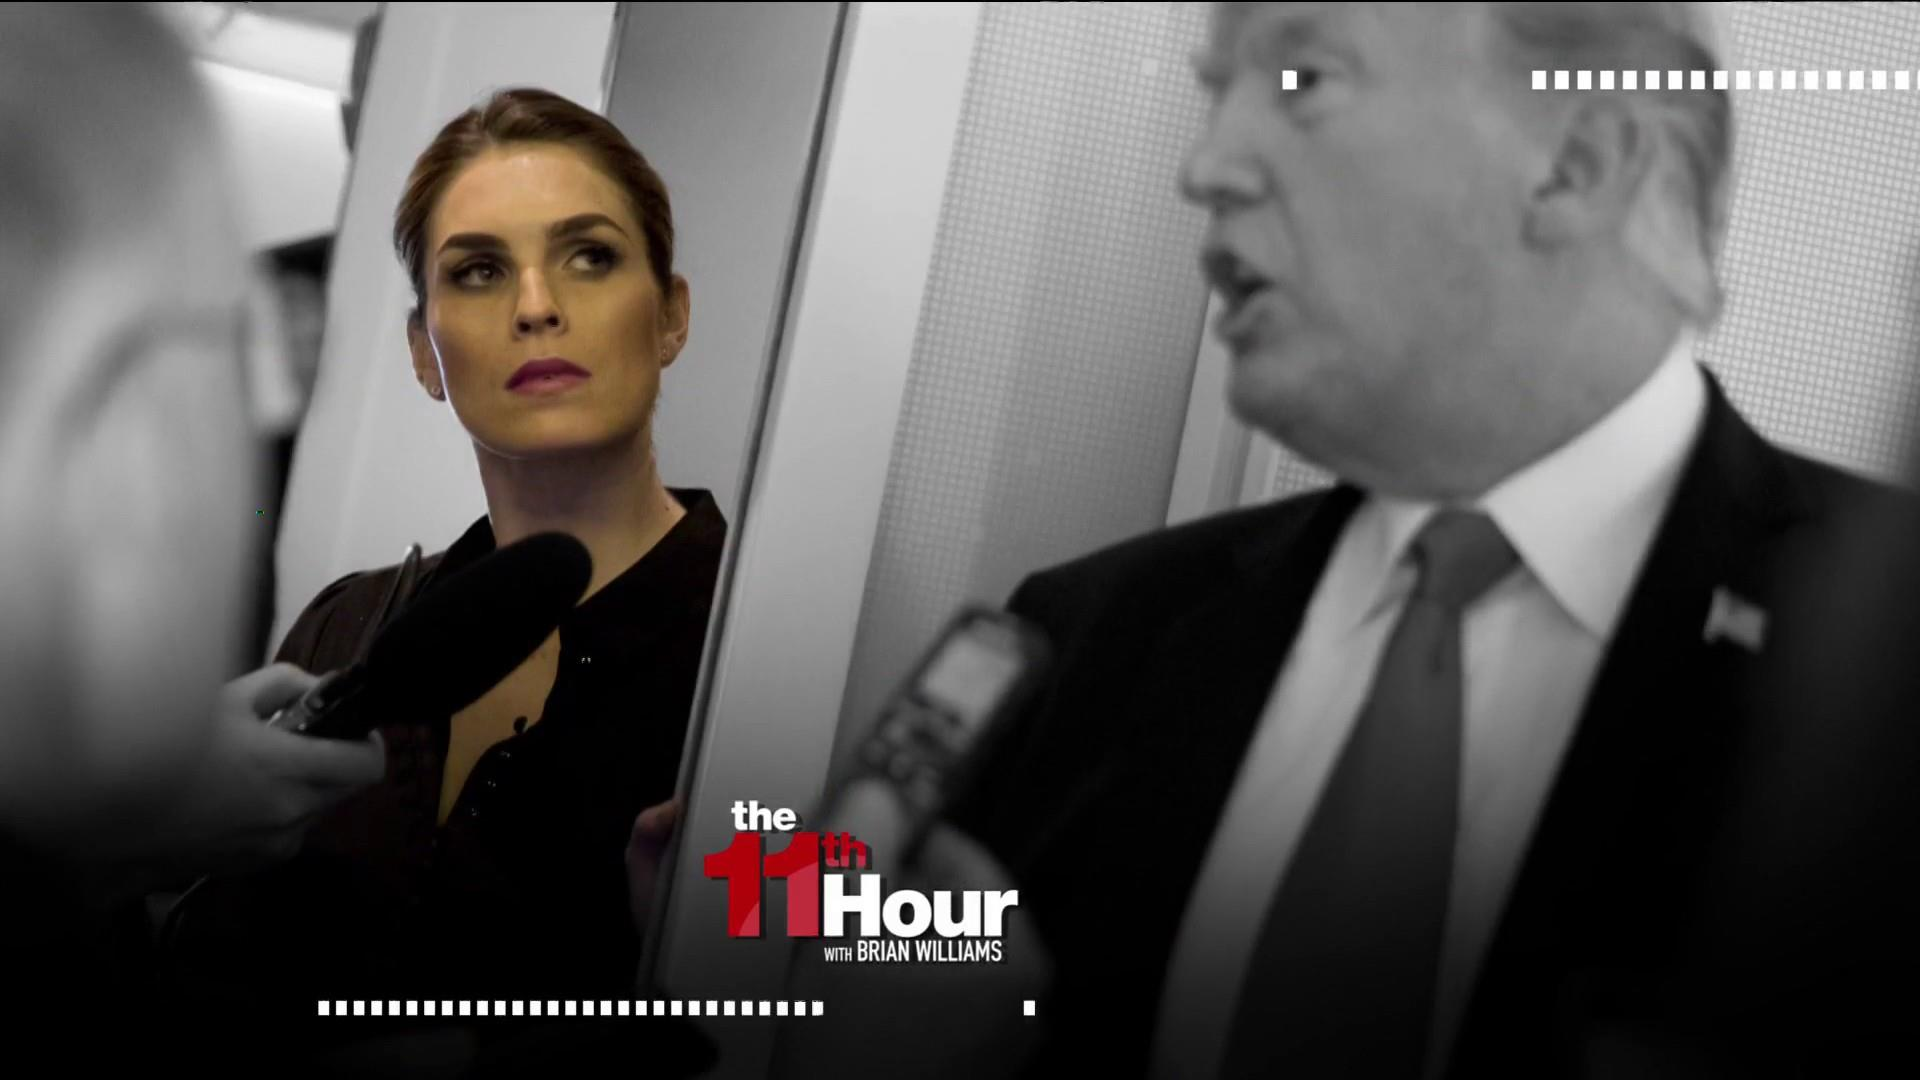 NYTimes: New scrutiny for Hope Hicks in Mueller probe